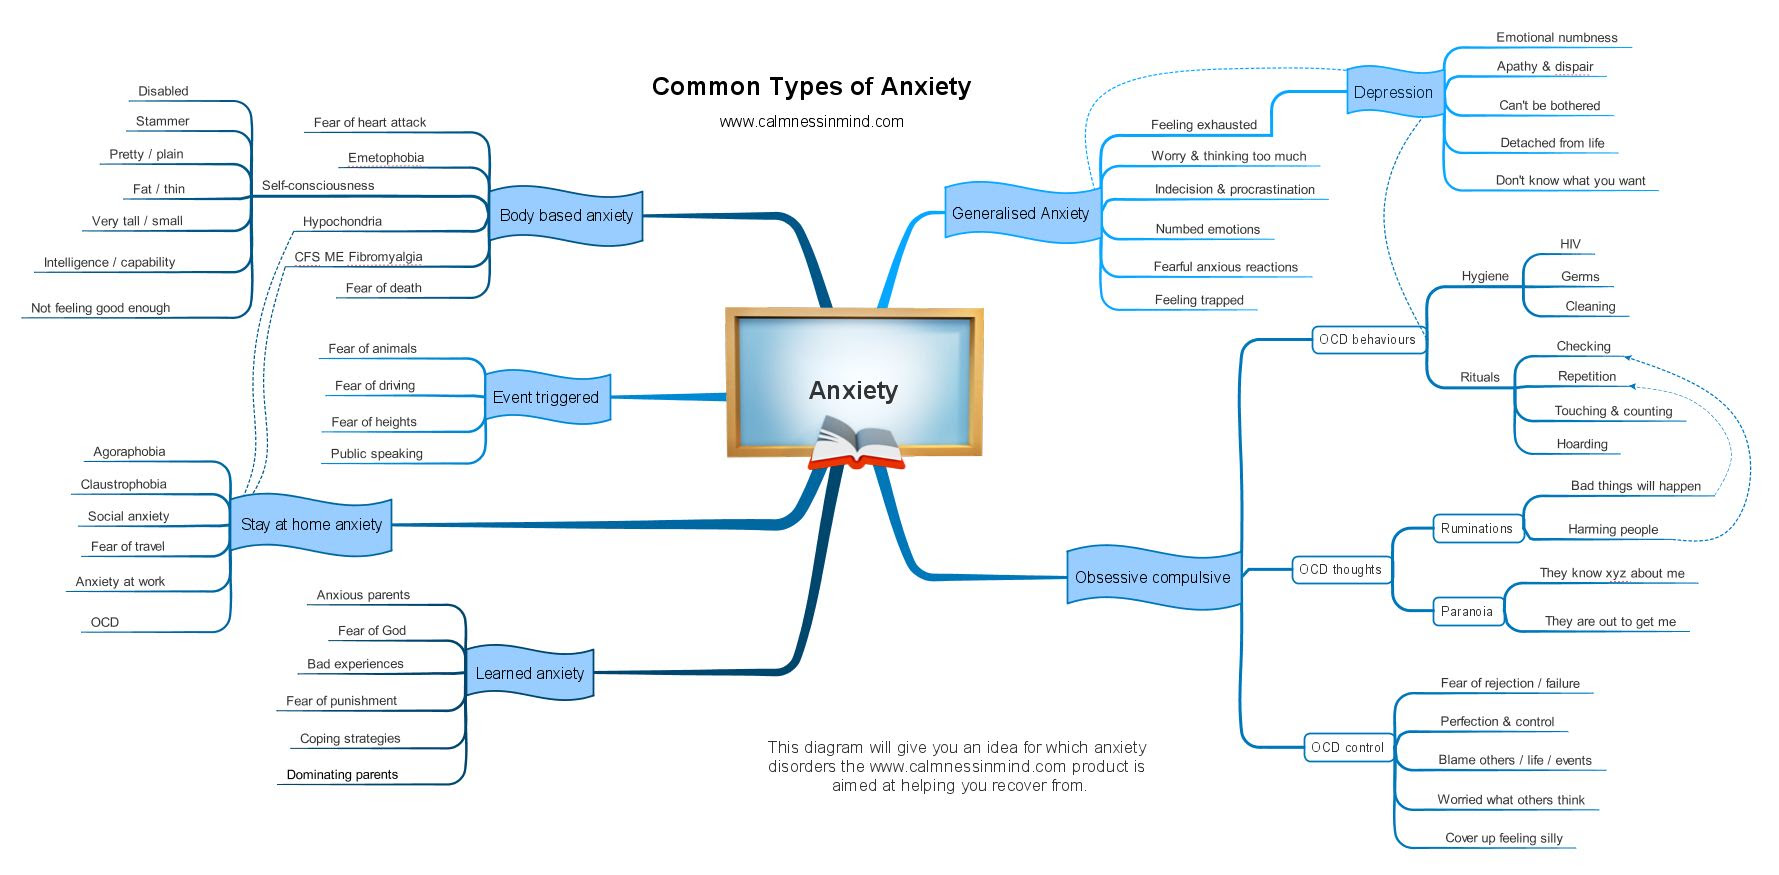 Discovering My Anxiety Disorder At 15